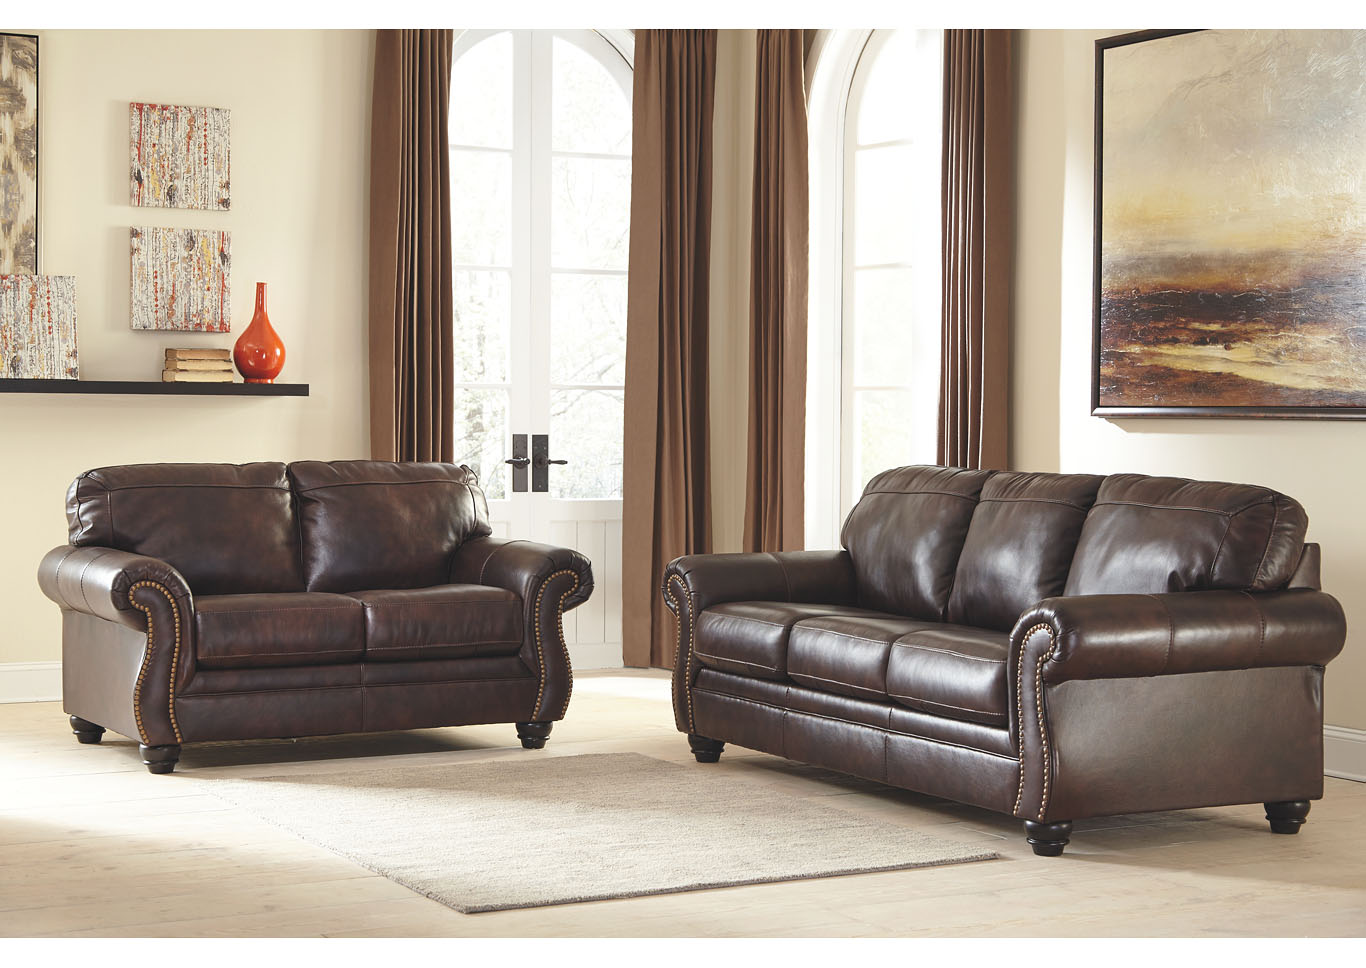 Alabama Furniture Market Bristan Walnut Sofa And Loveseat